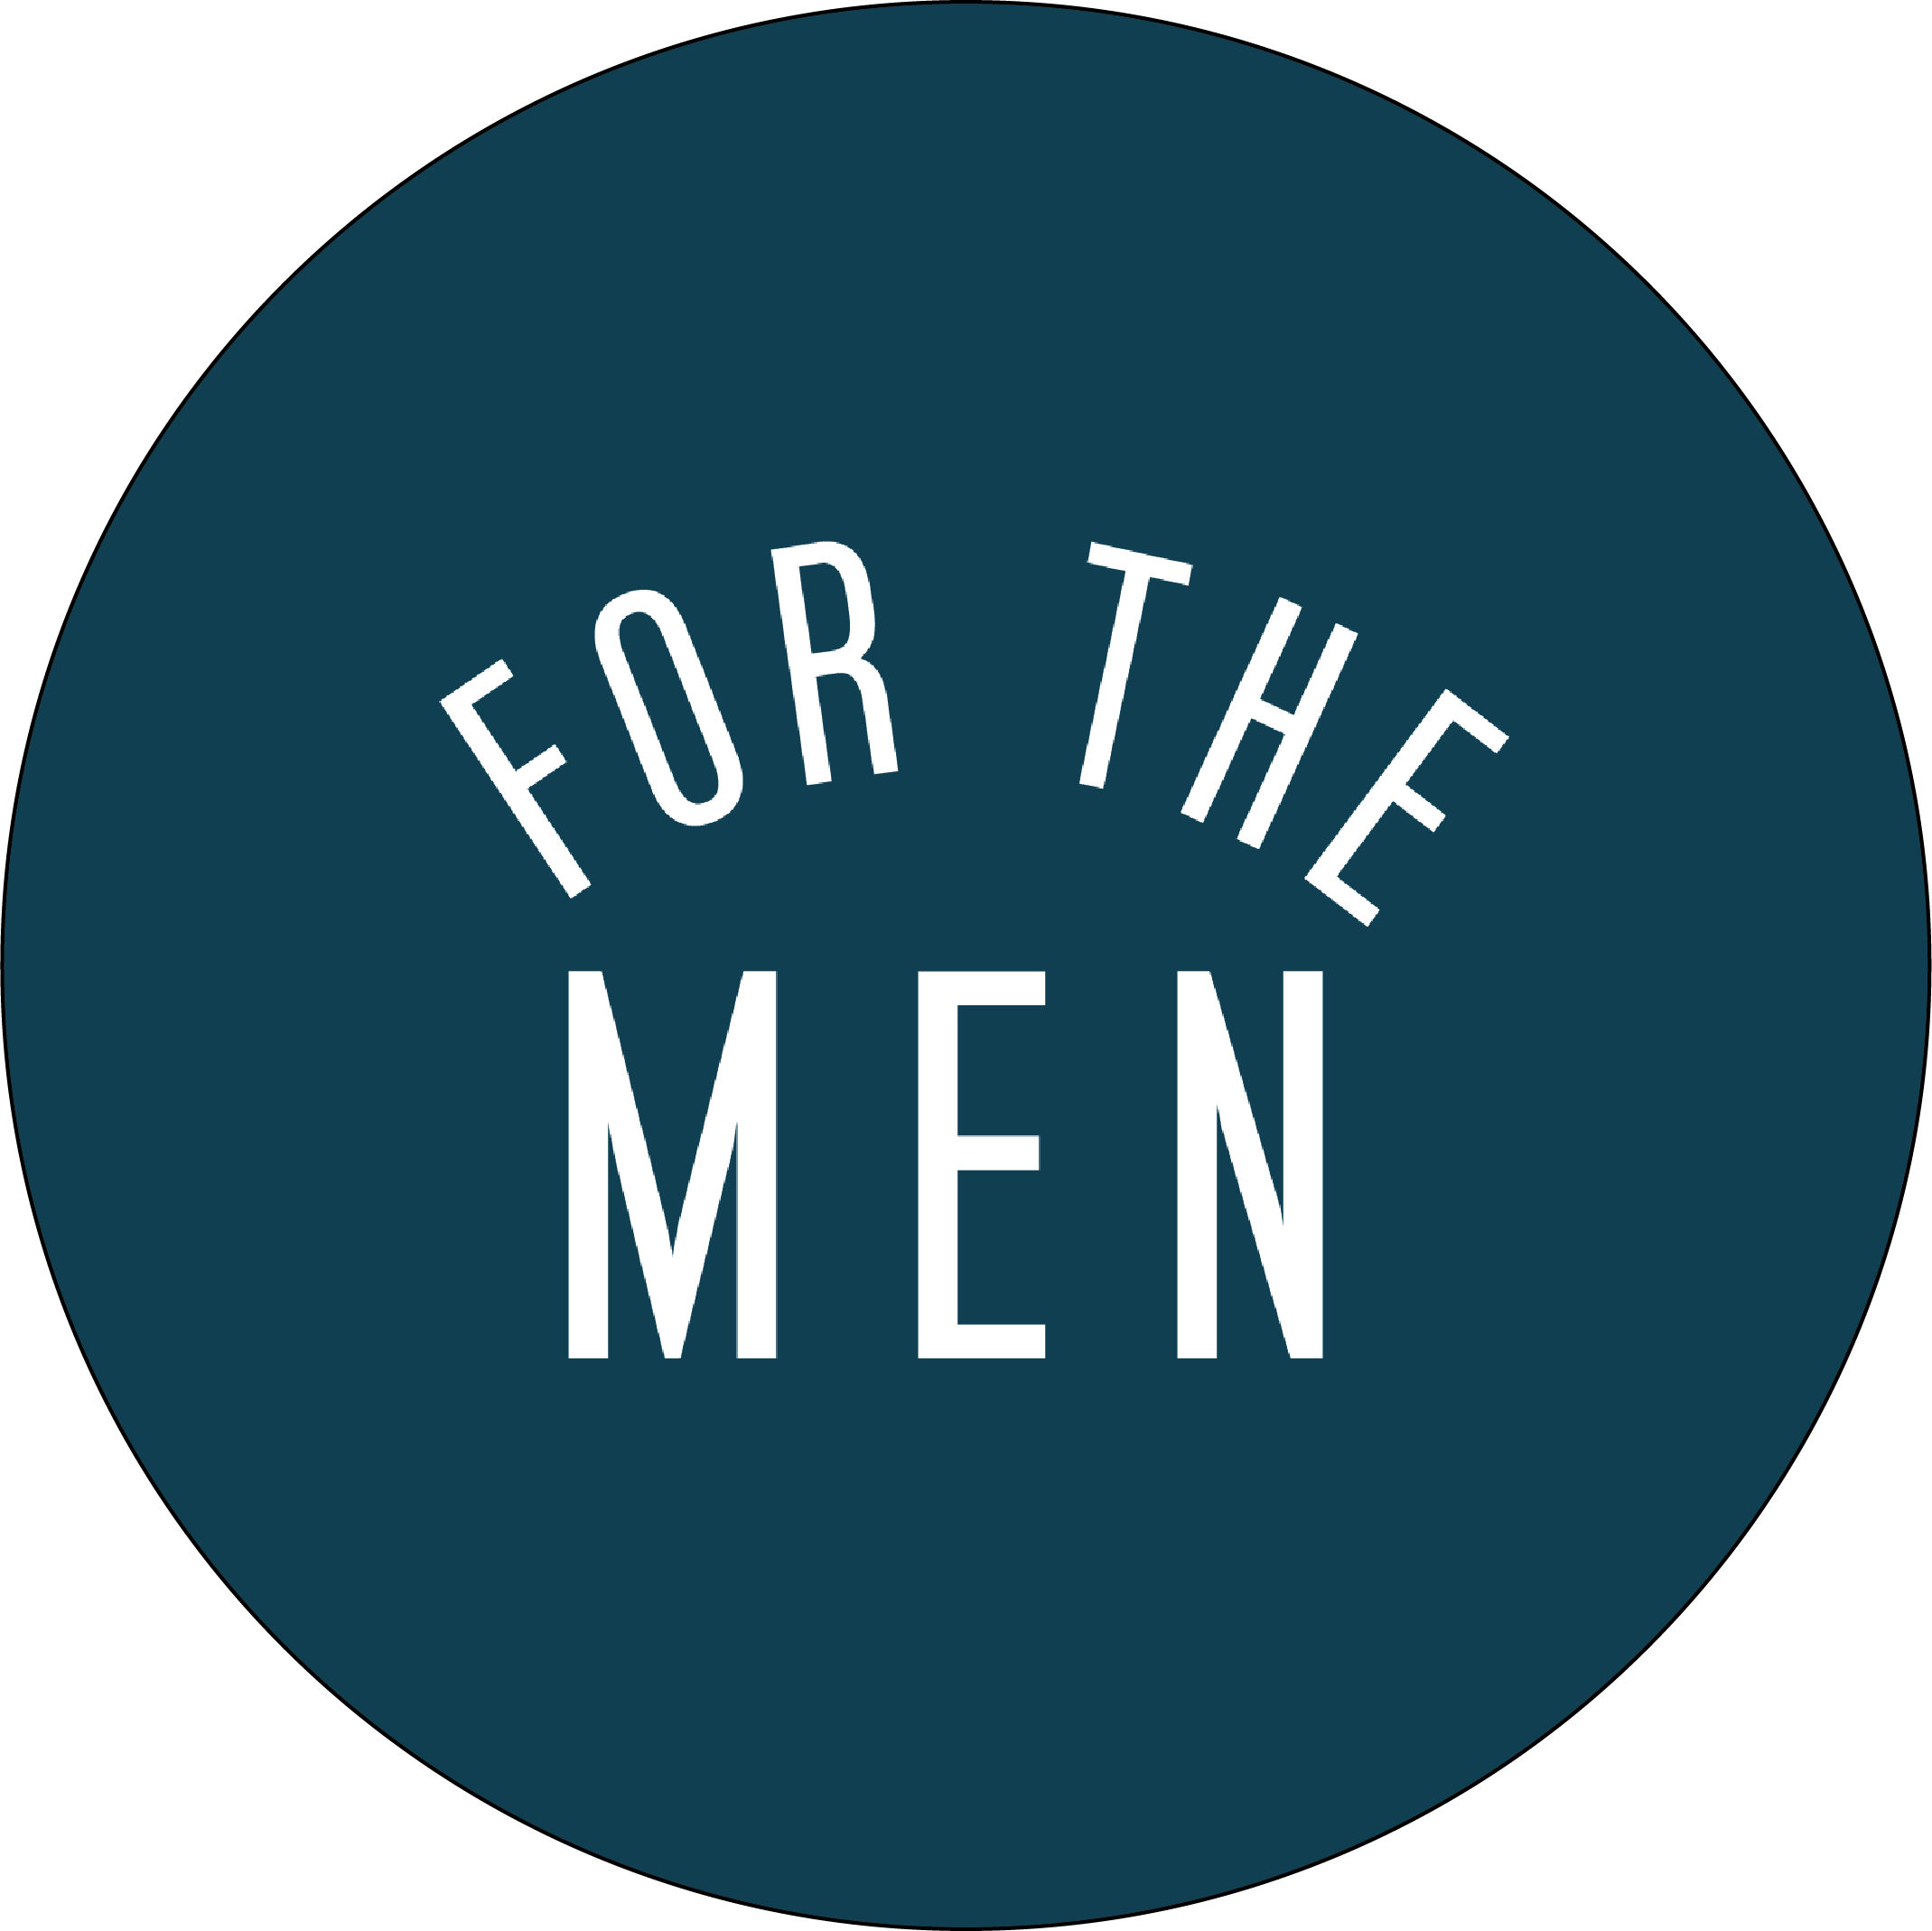 mensicon2.png